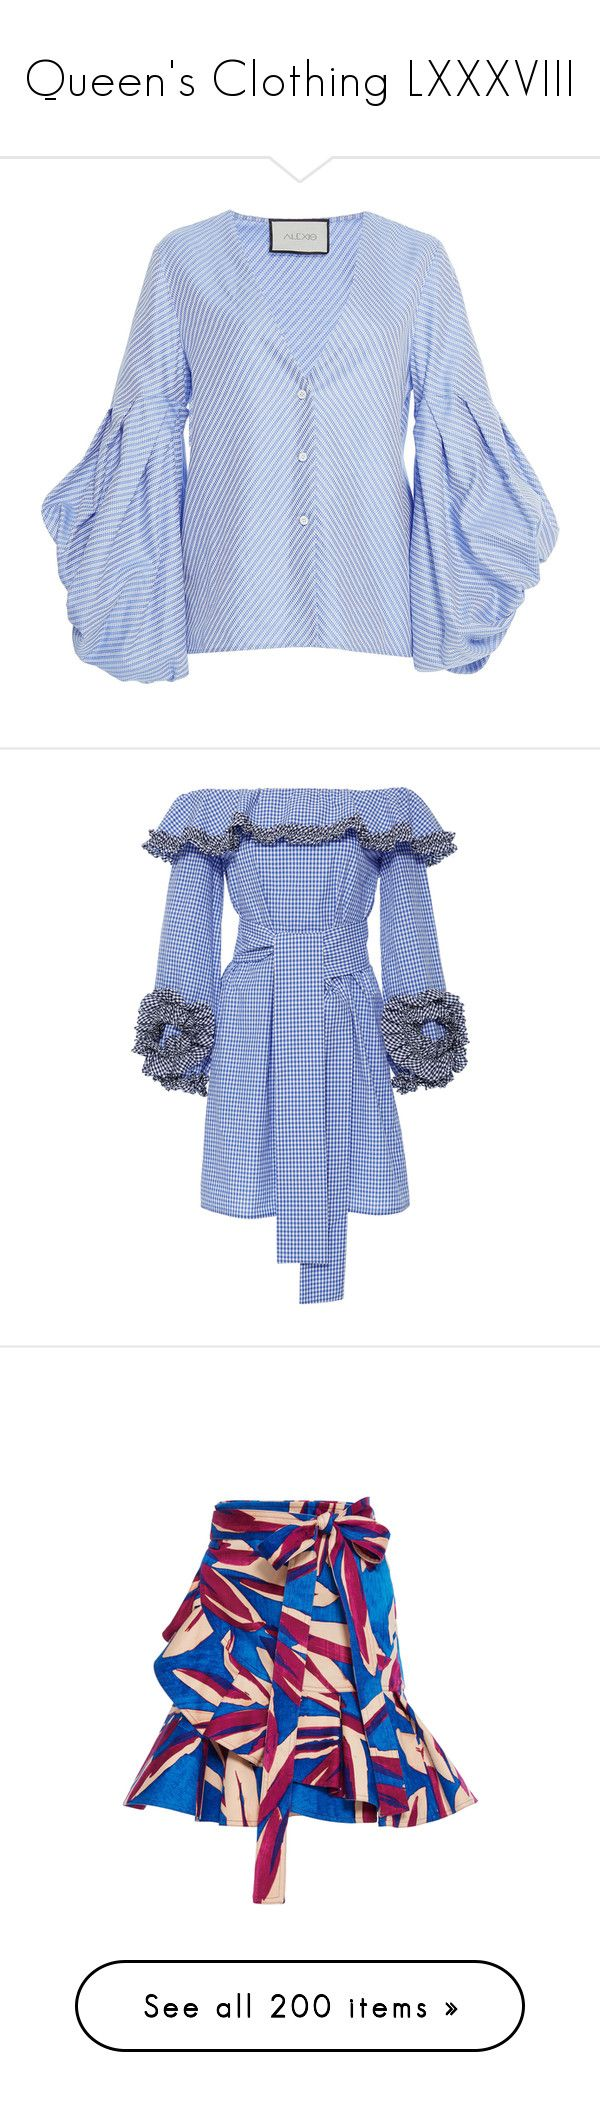 """Queen's Clothing LXXXVIII"" by ms-perry on Polyvore featuring tops, blue, blue top, v-neck top, balloon sleeve top, button down top, sleeve top, dresses, off shoulder cocktail dress и off shoulder dress"